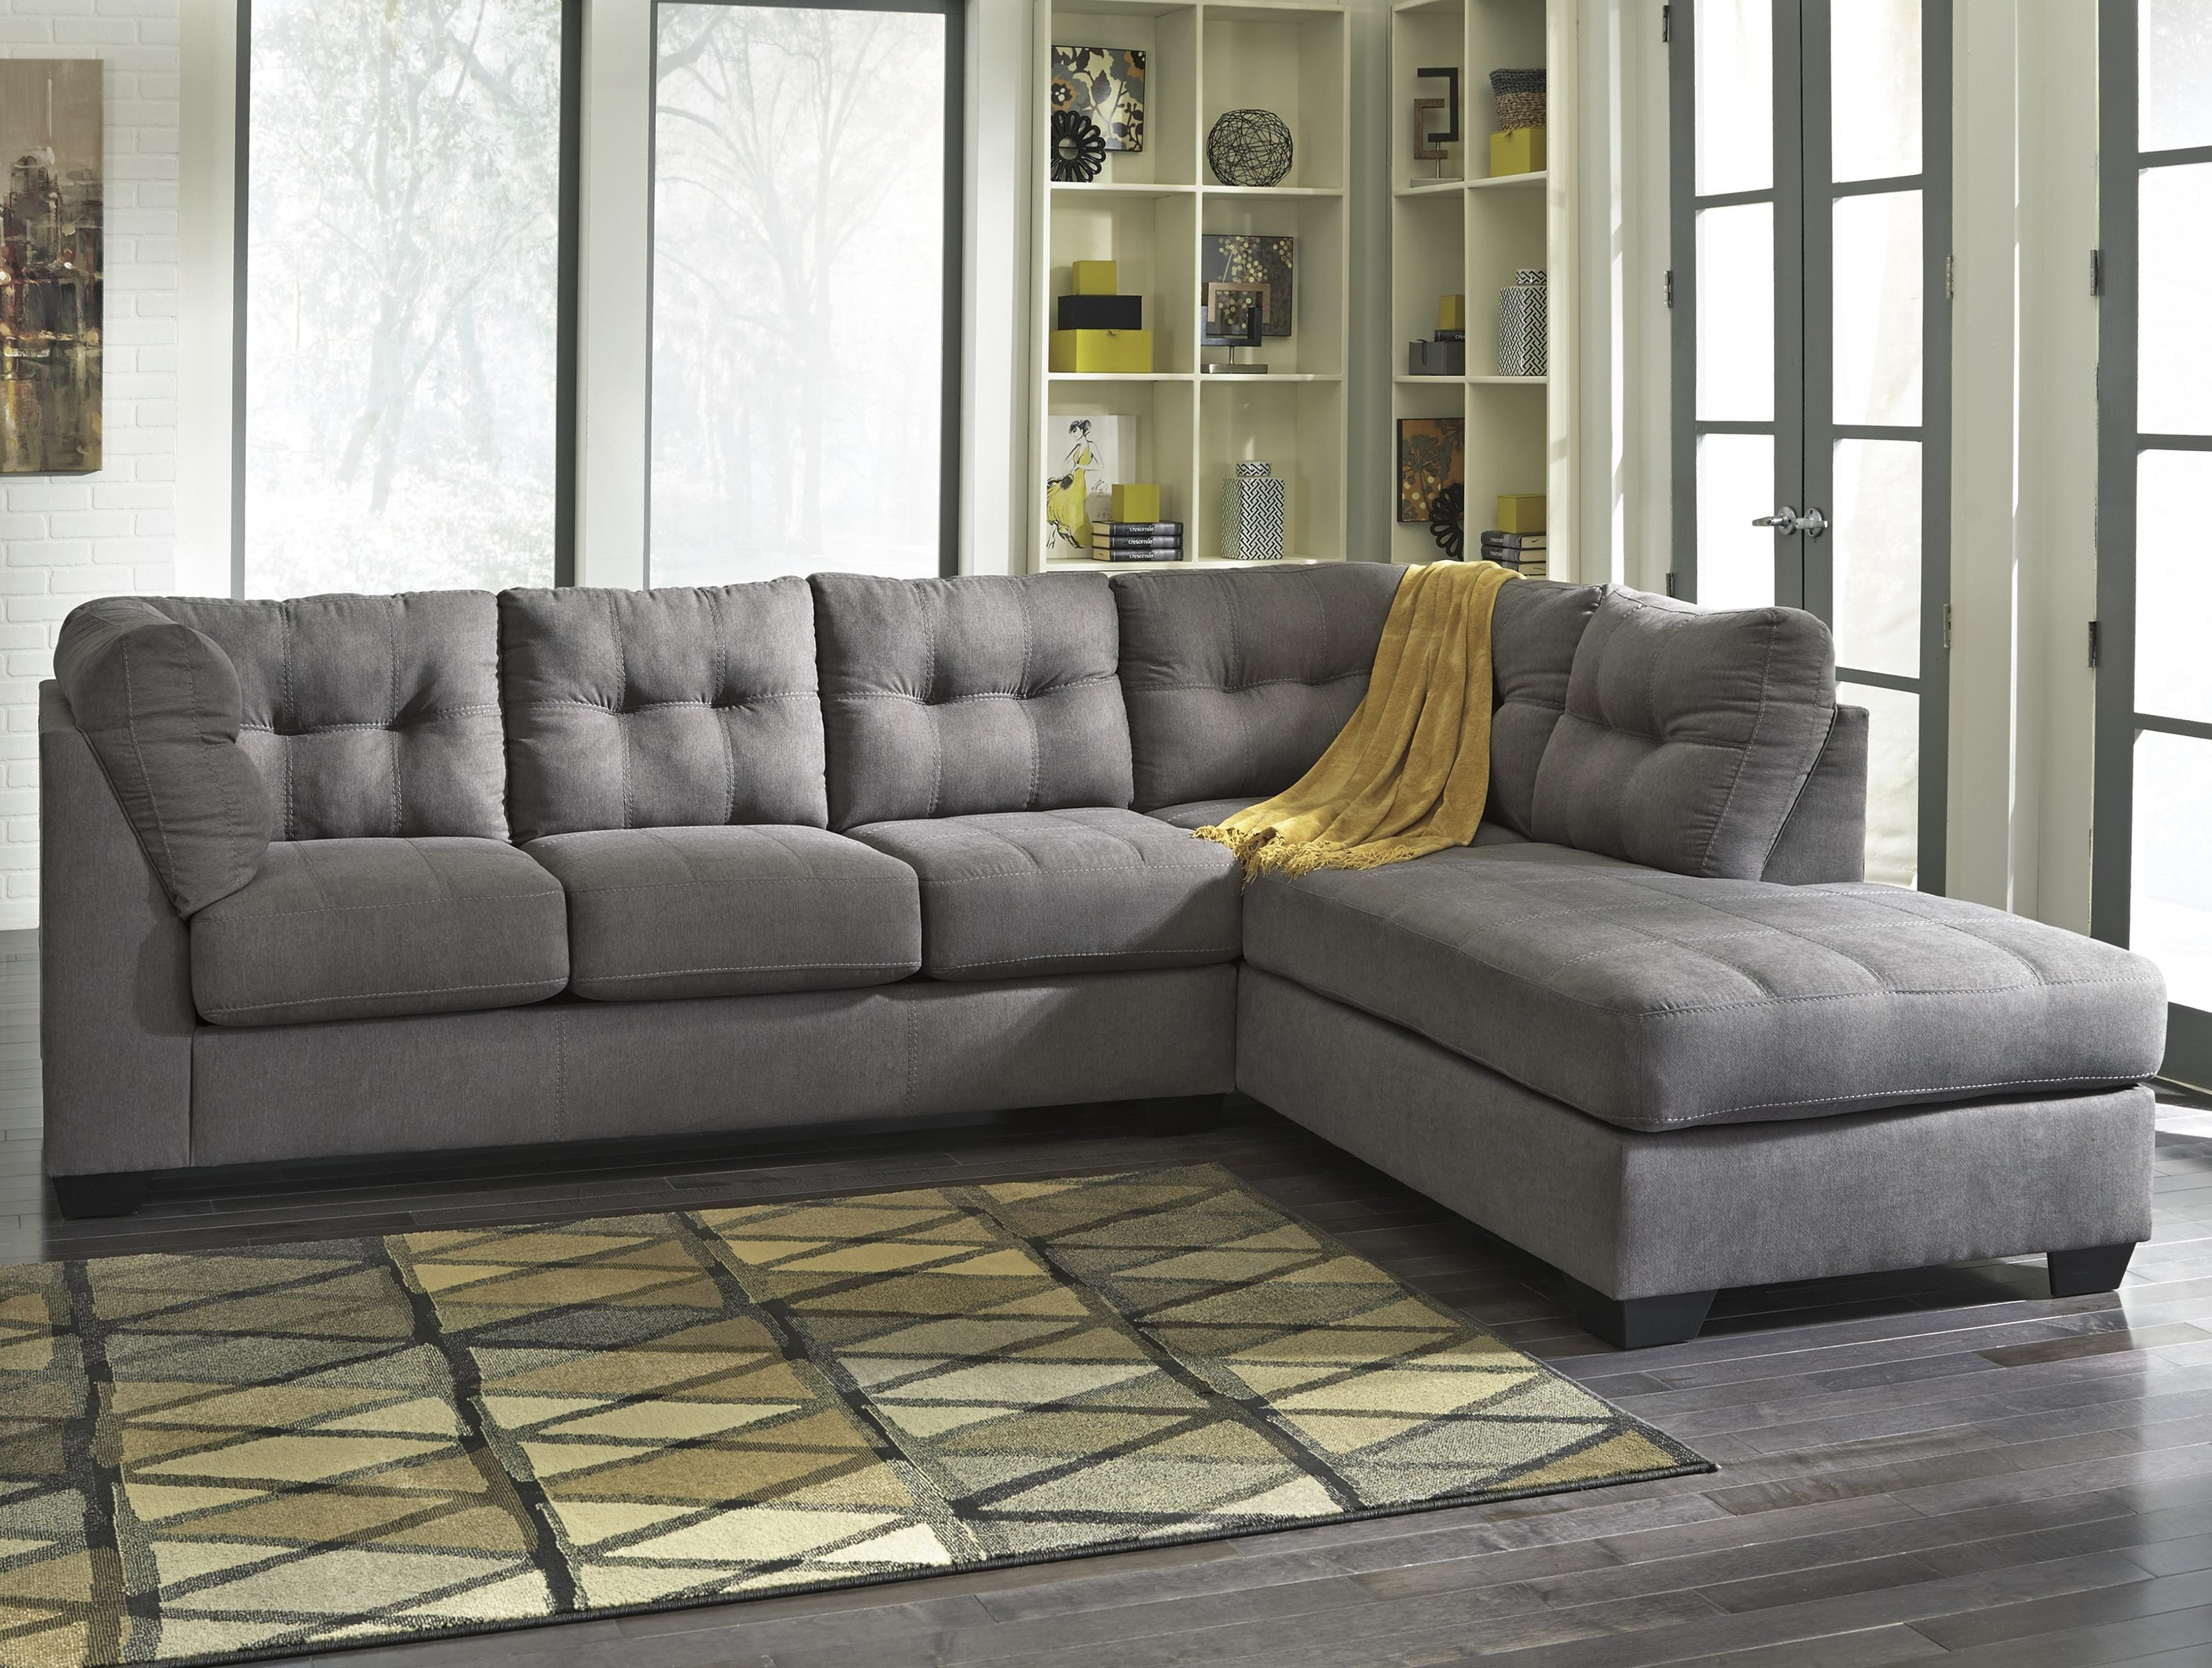 Sectional Sofas With Regard To Well Known Benchcraft Maier – Charcoal 2 Piece Sectional W/ Sleeper Sofa (View 19 of 20)